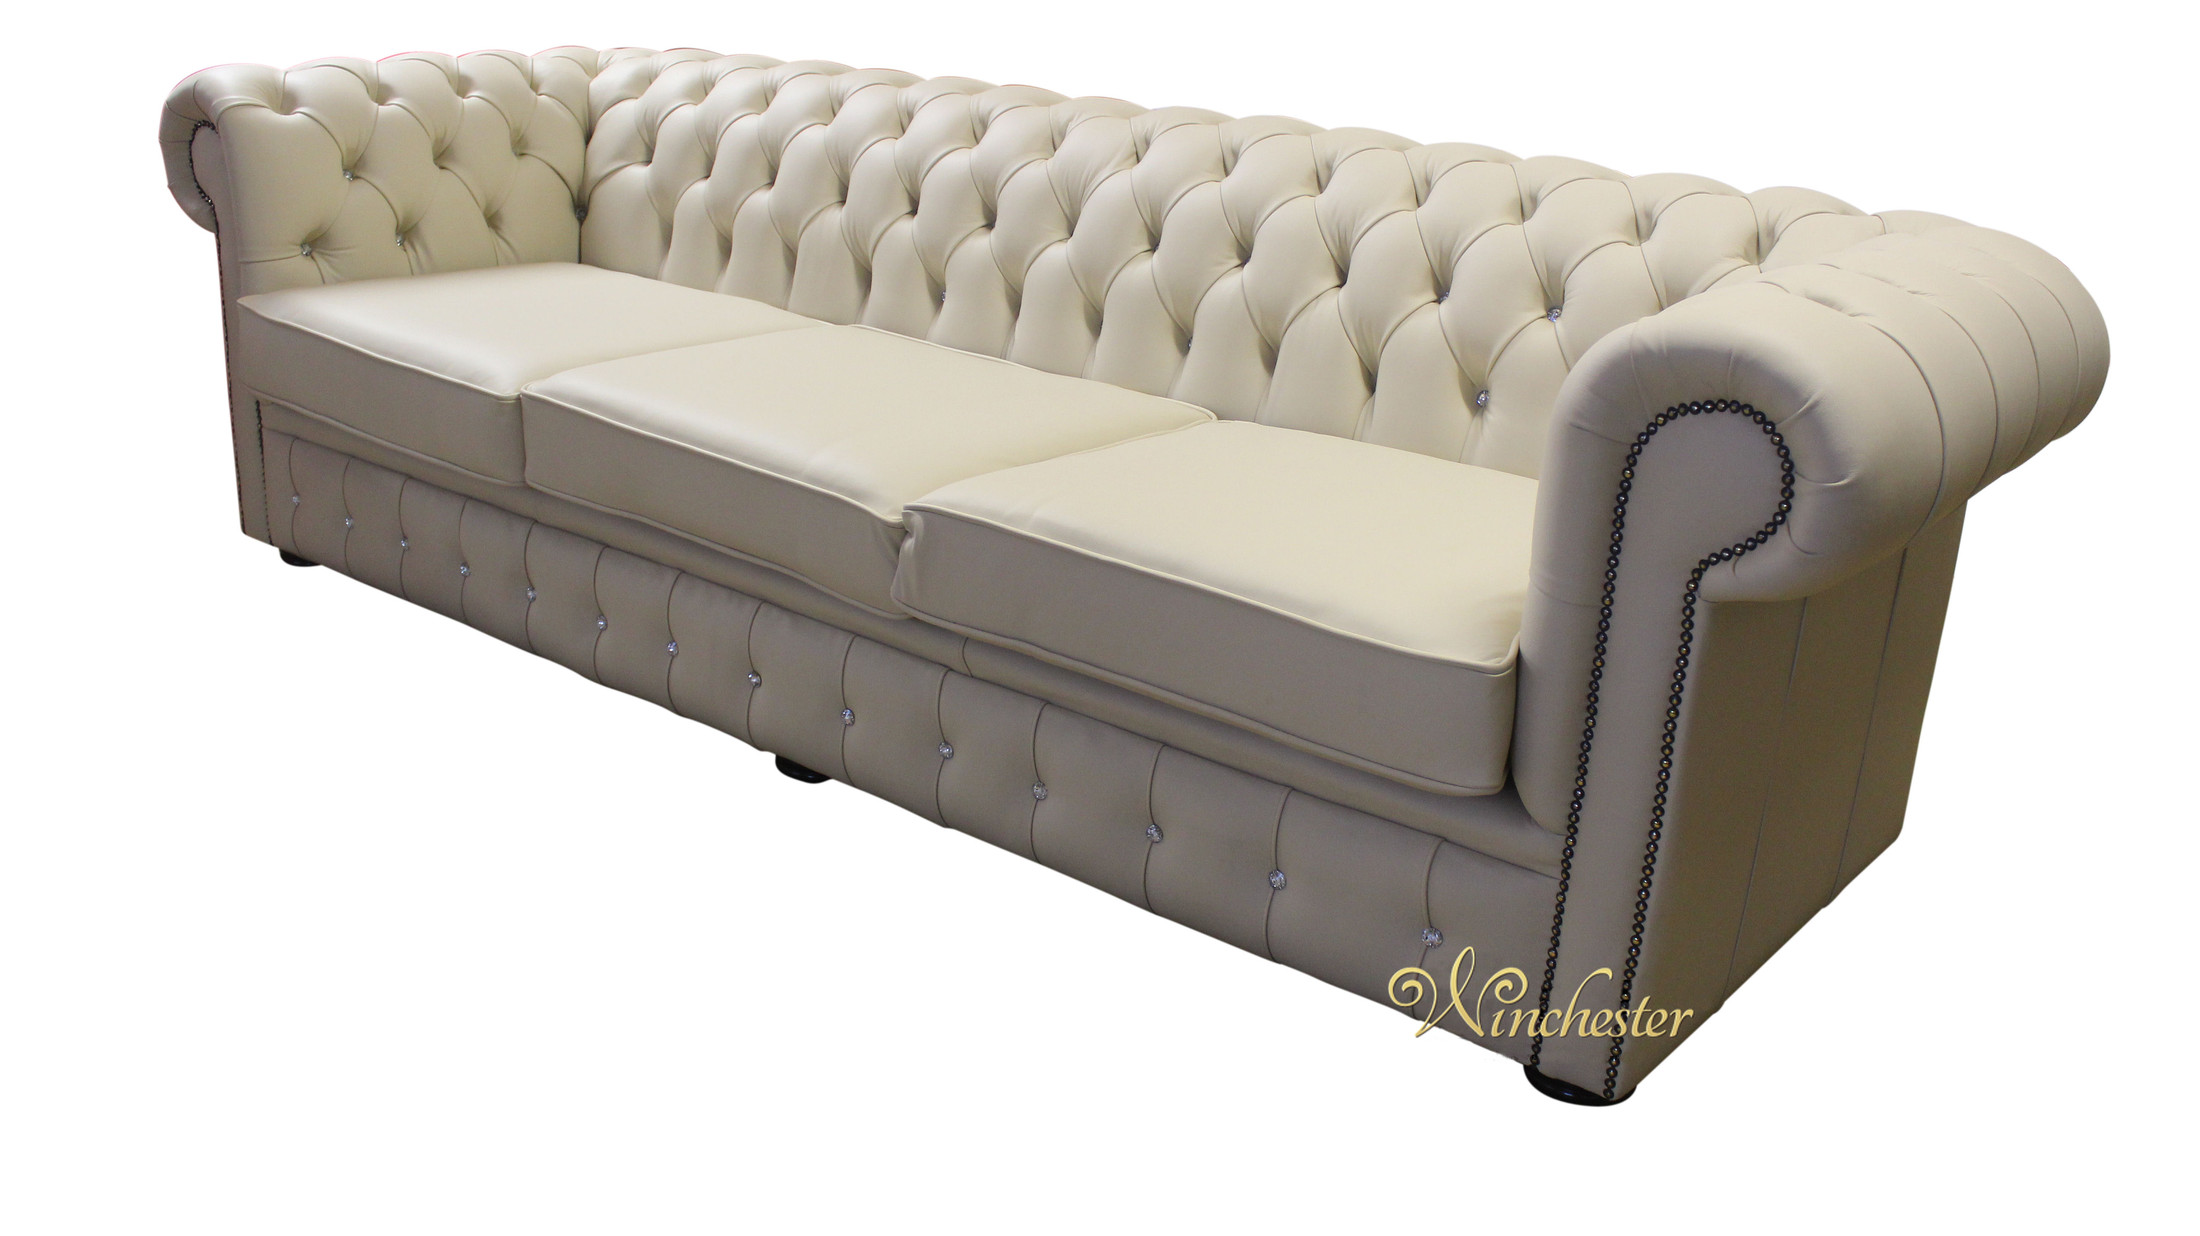 ... Chesterfield Swarovski Crystal Leather 4 Seater Diamante Sofa